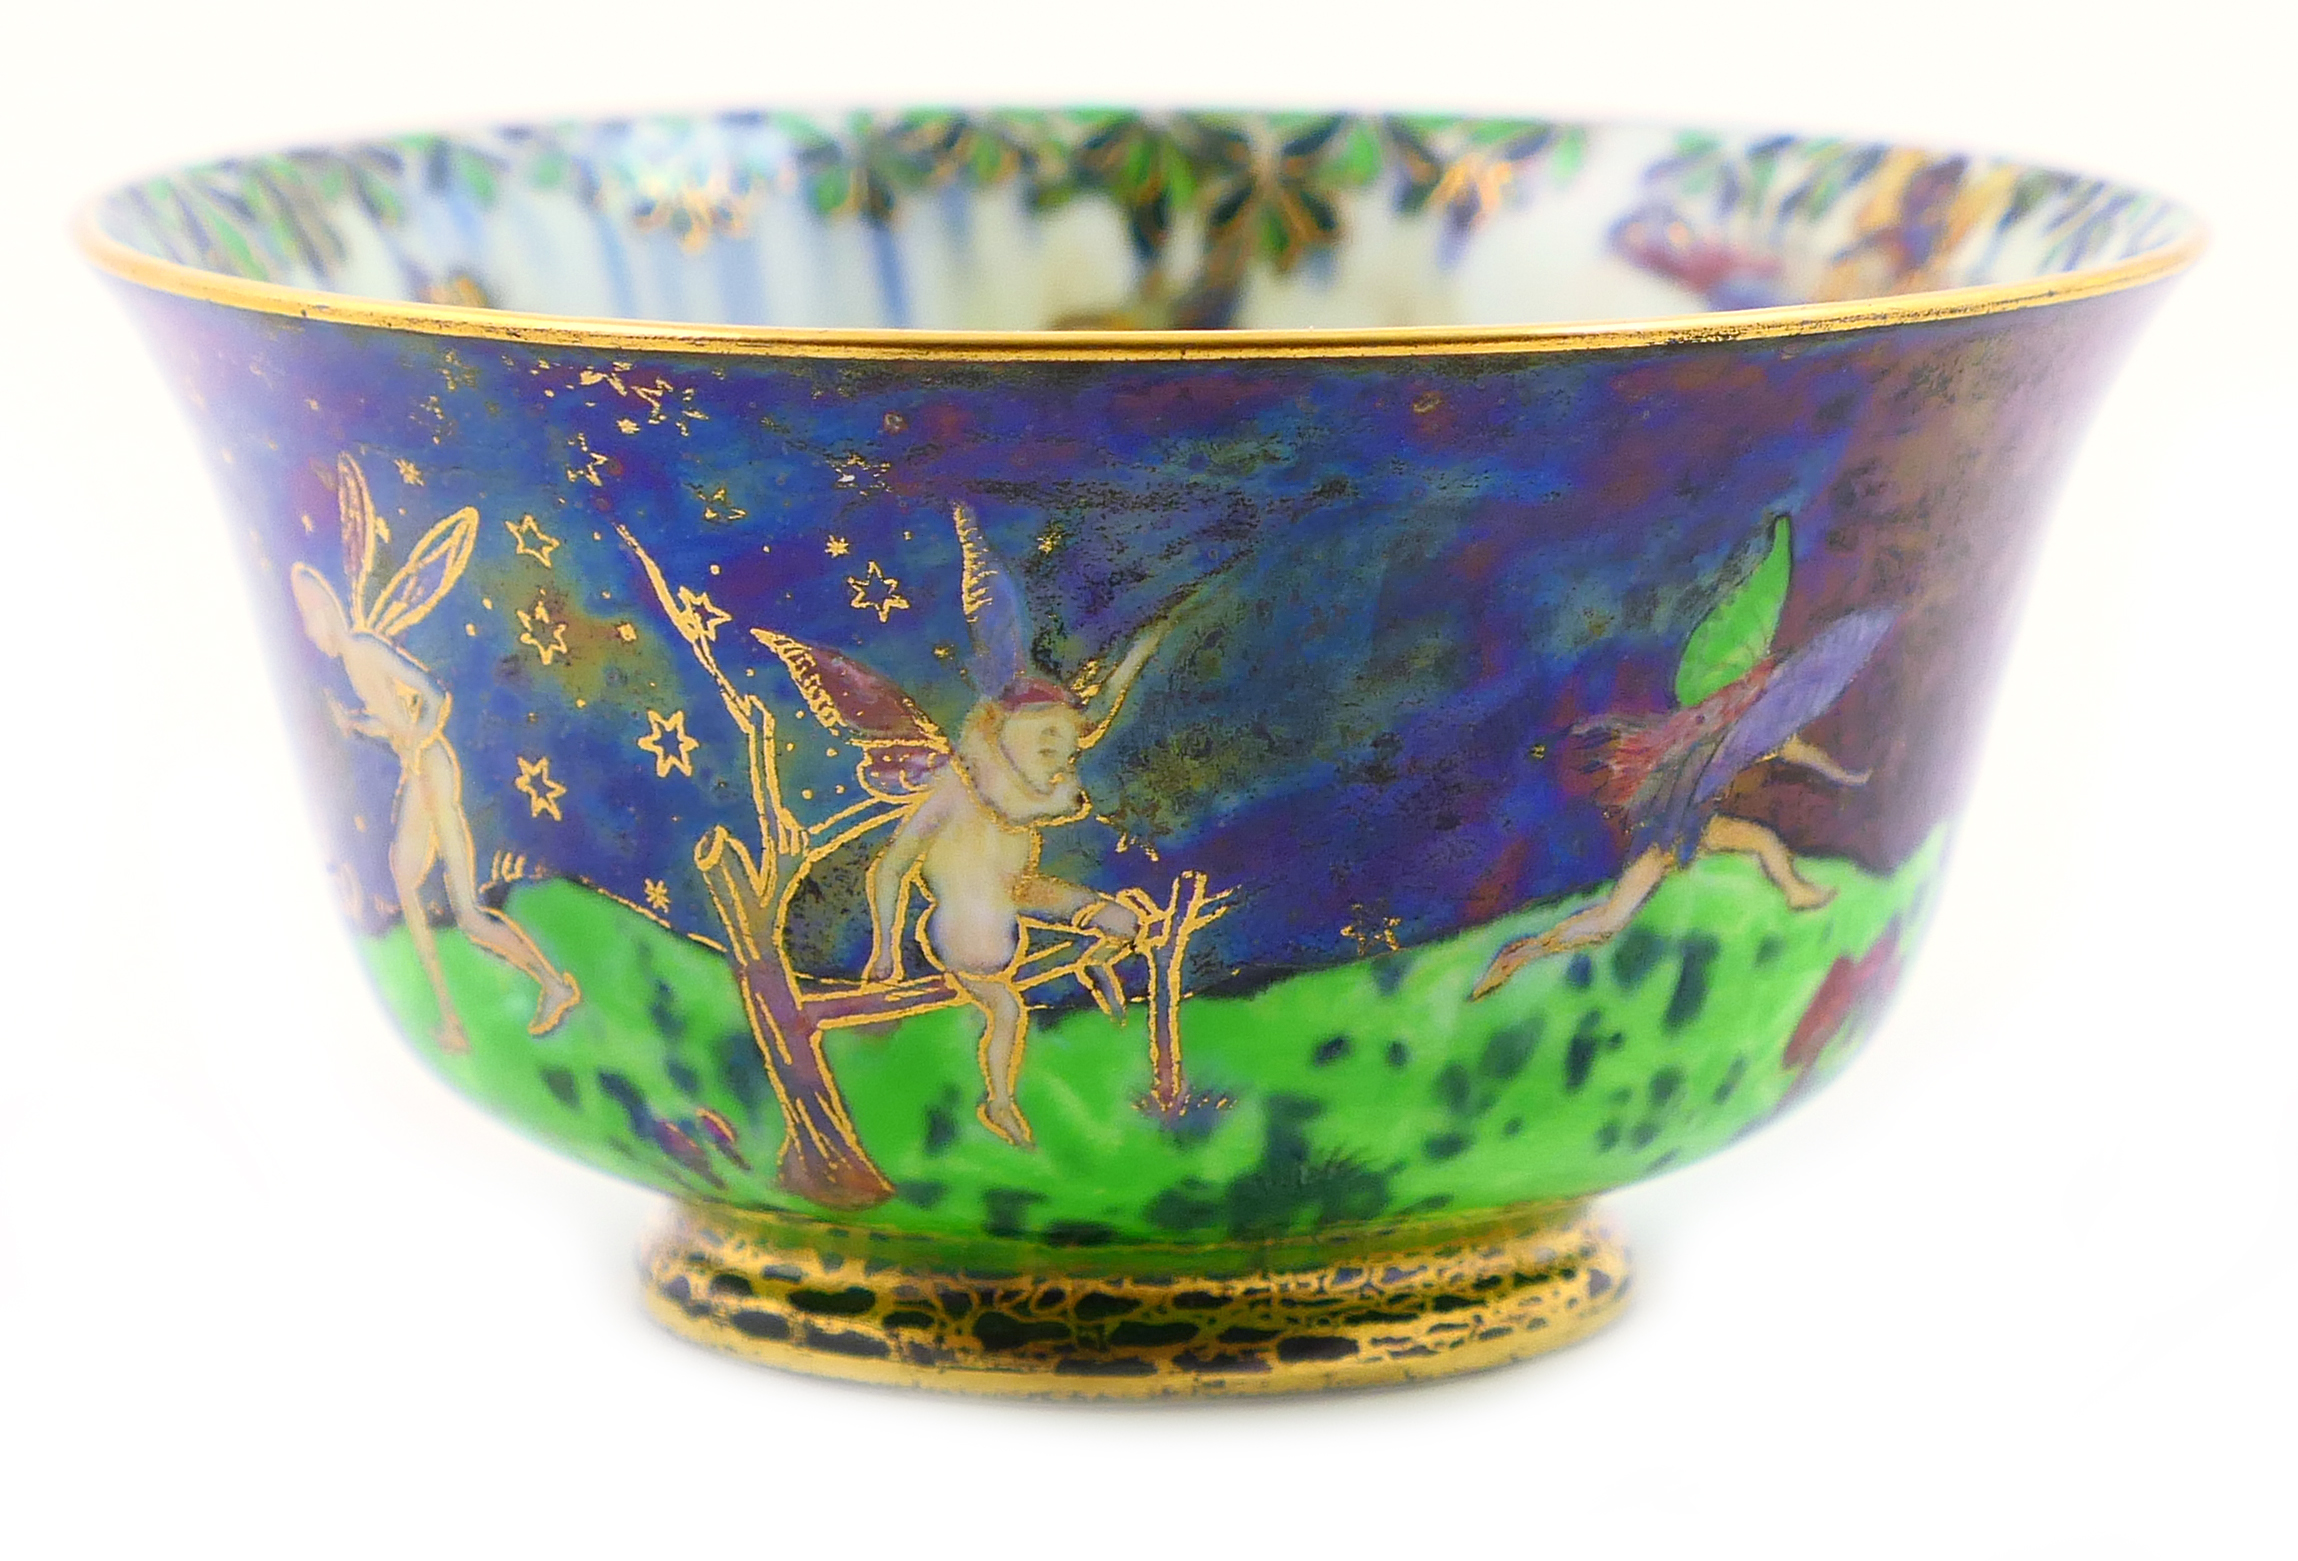 Lot 35 - Wedgwood Fairyland lustre York cup, designed by Daisy Makeig-Jones, decorated in the Leapfrogging